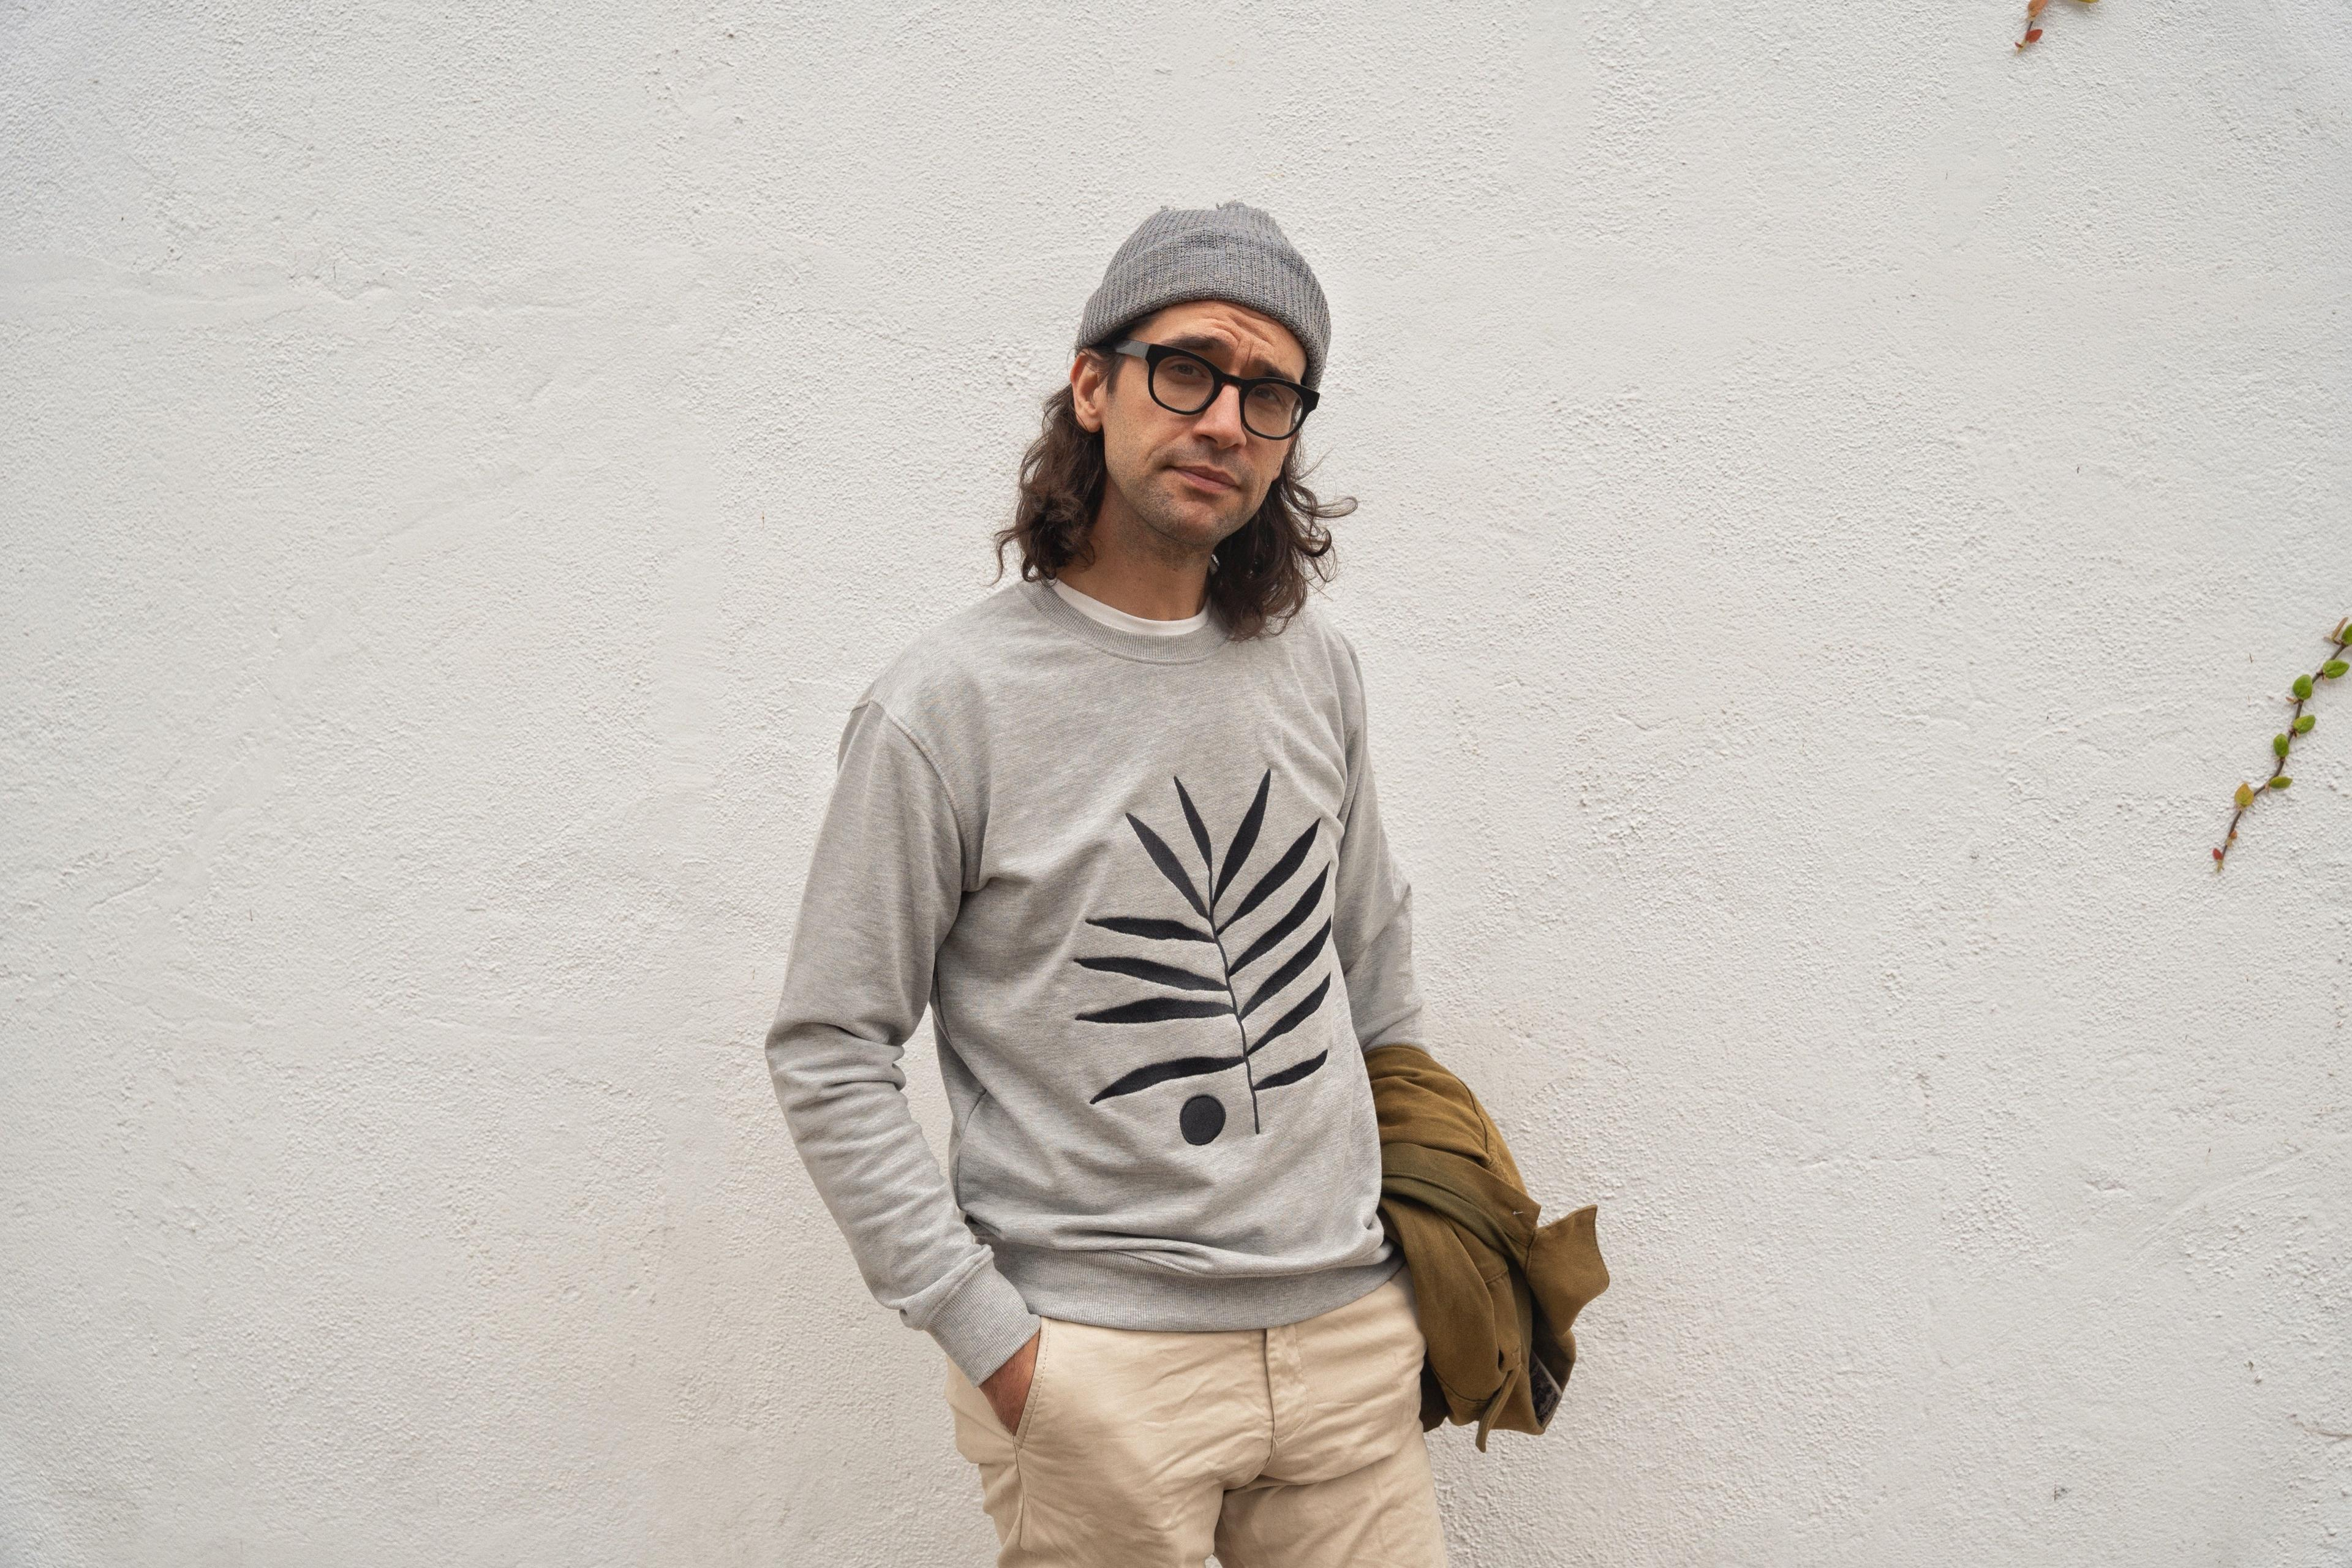 A Sweatshirt designed by Daren Magee, made by Kotn Supply